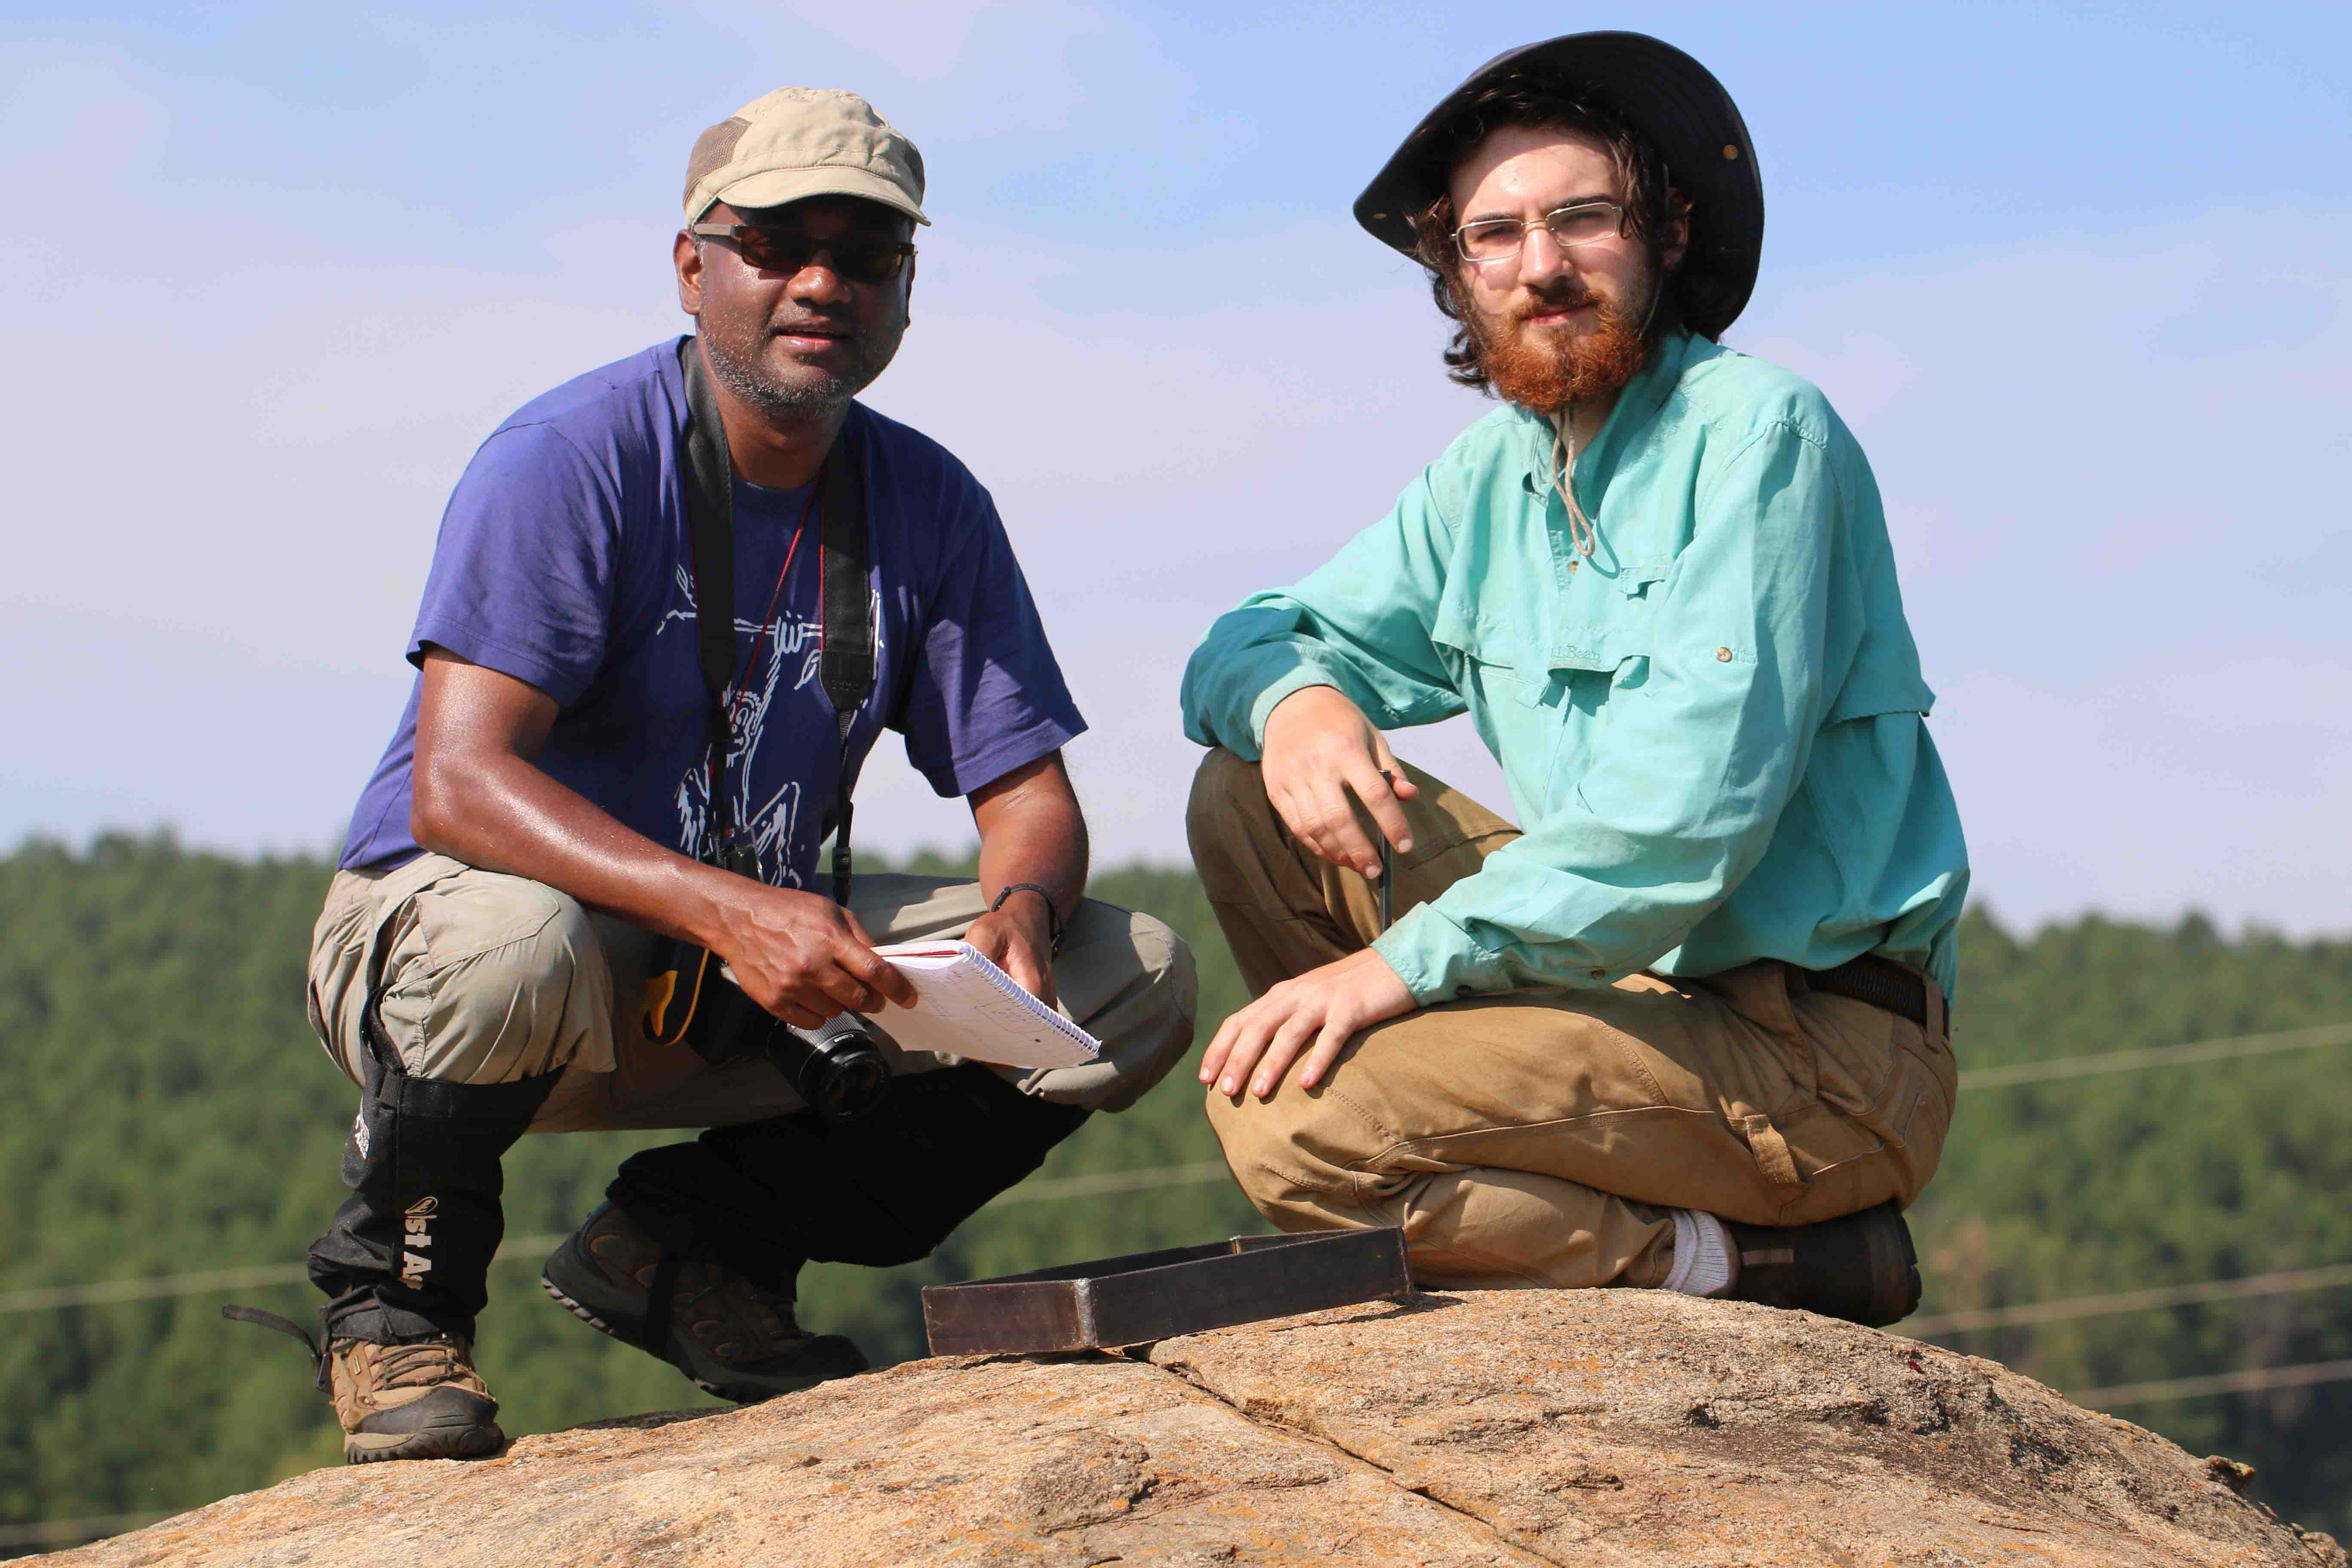 Nishi Rajakaruna (left) and Ian Medeiros collect lichen specimens on an outcropping of the rock serpentinite during an expedition in eastern South Africa.